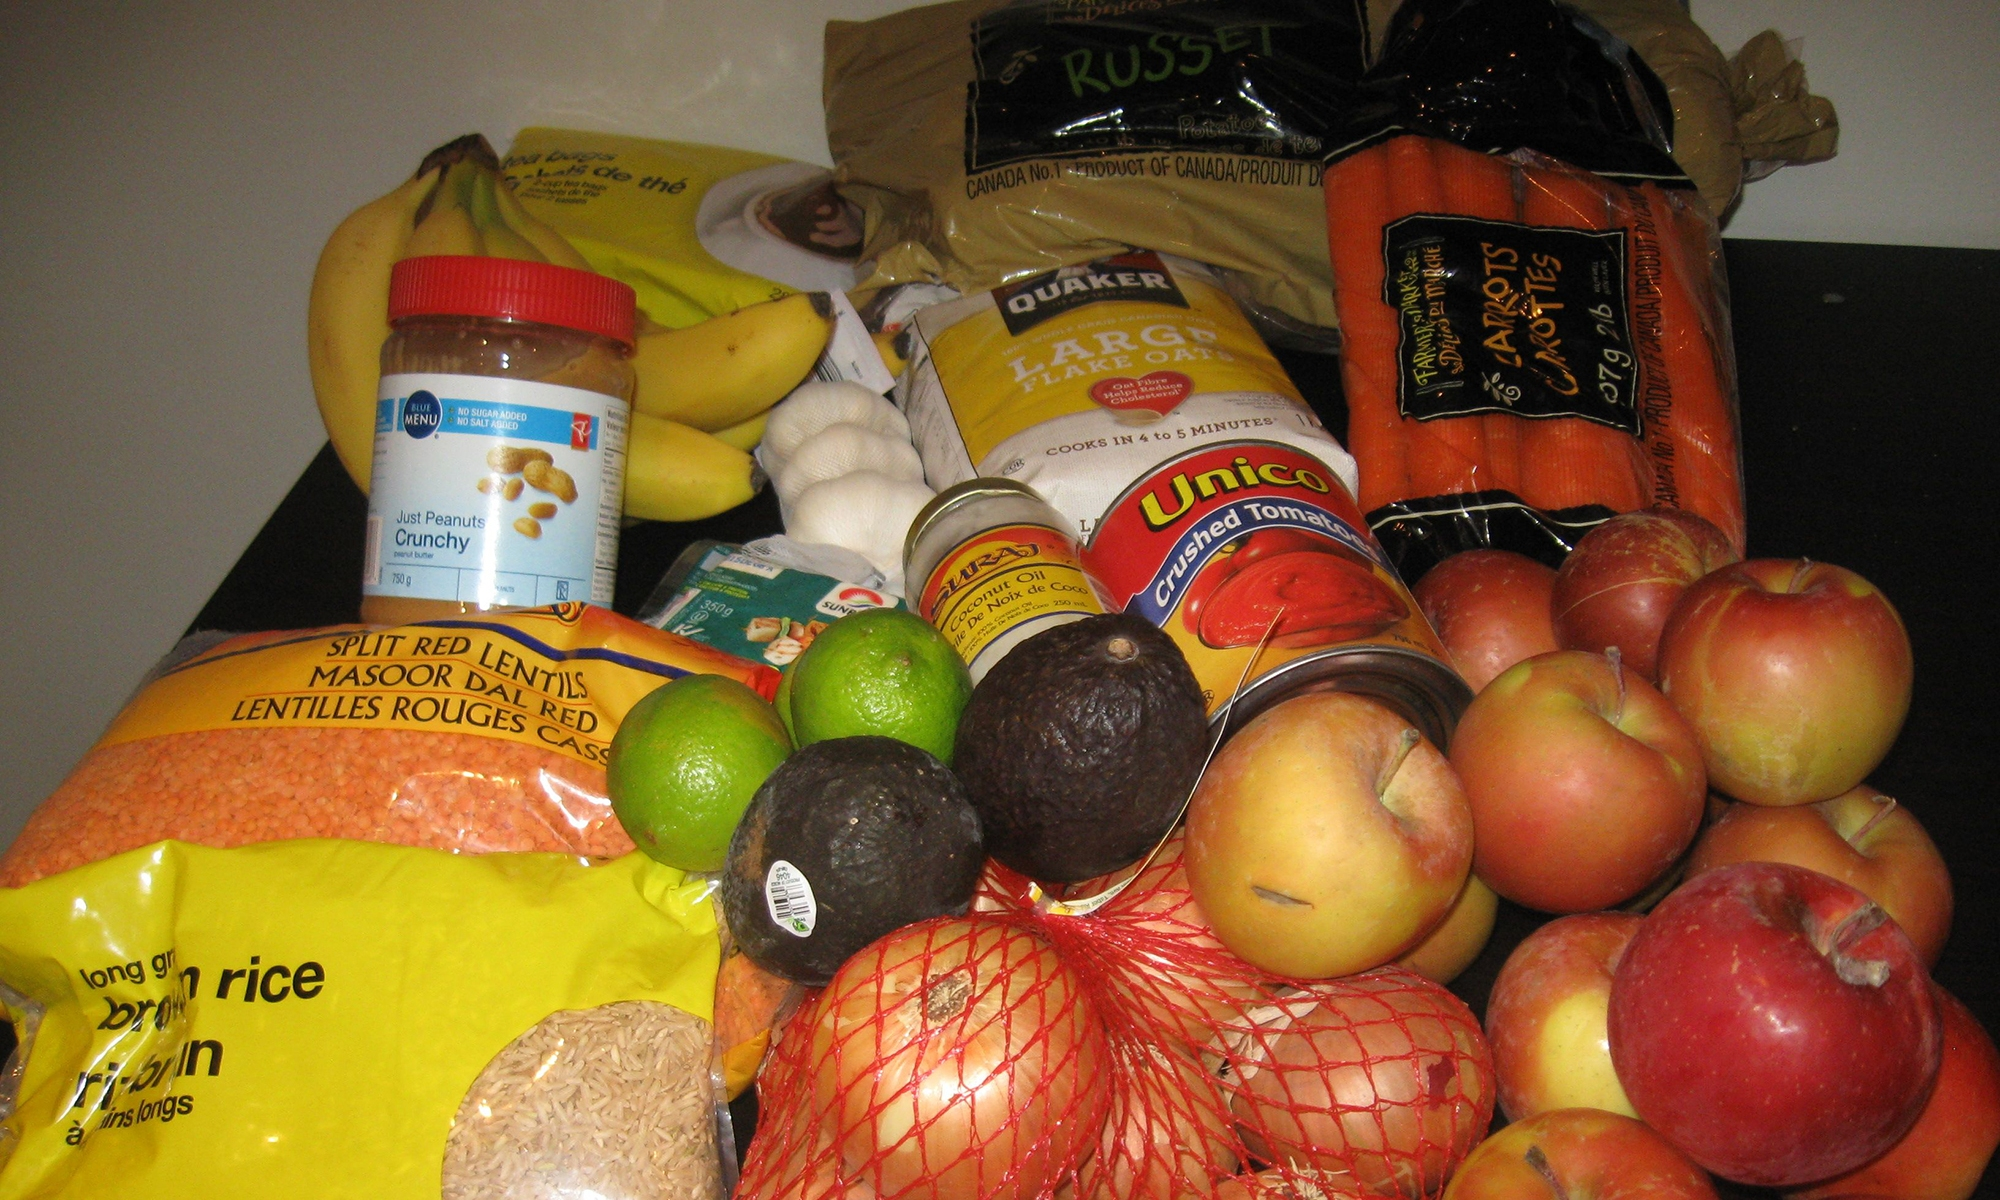 Food that Barb Ryeburn bought for the 2015 Welfare Food Challenge